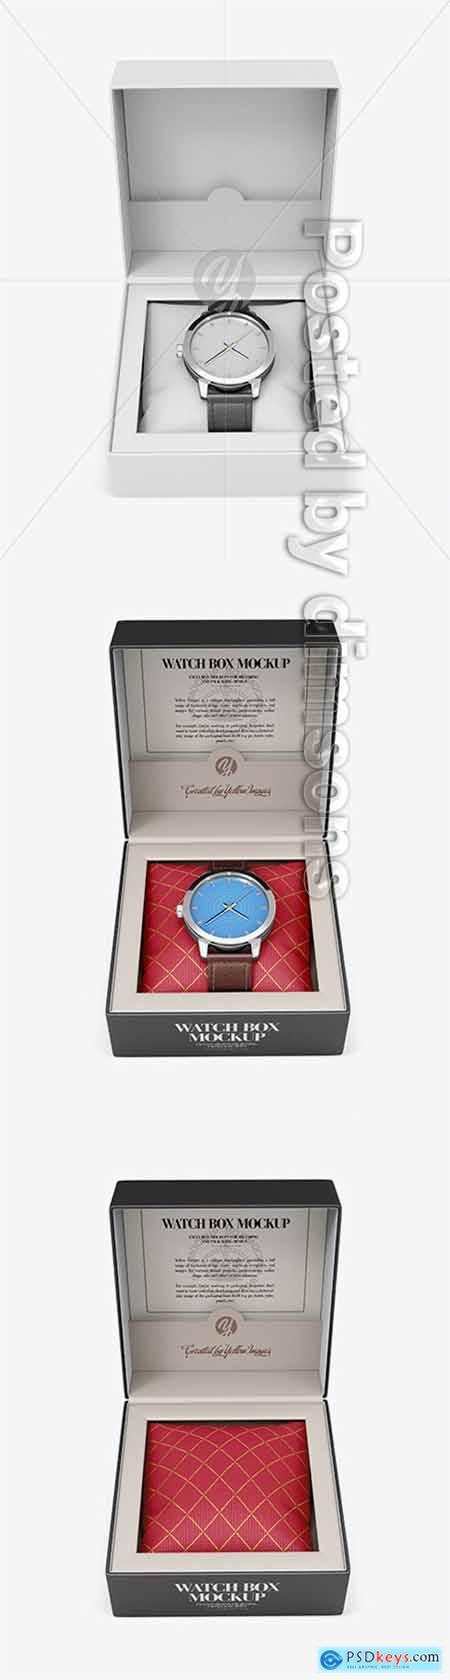 Opened Watch Box Mockup - Front View 51464